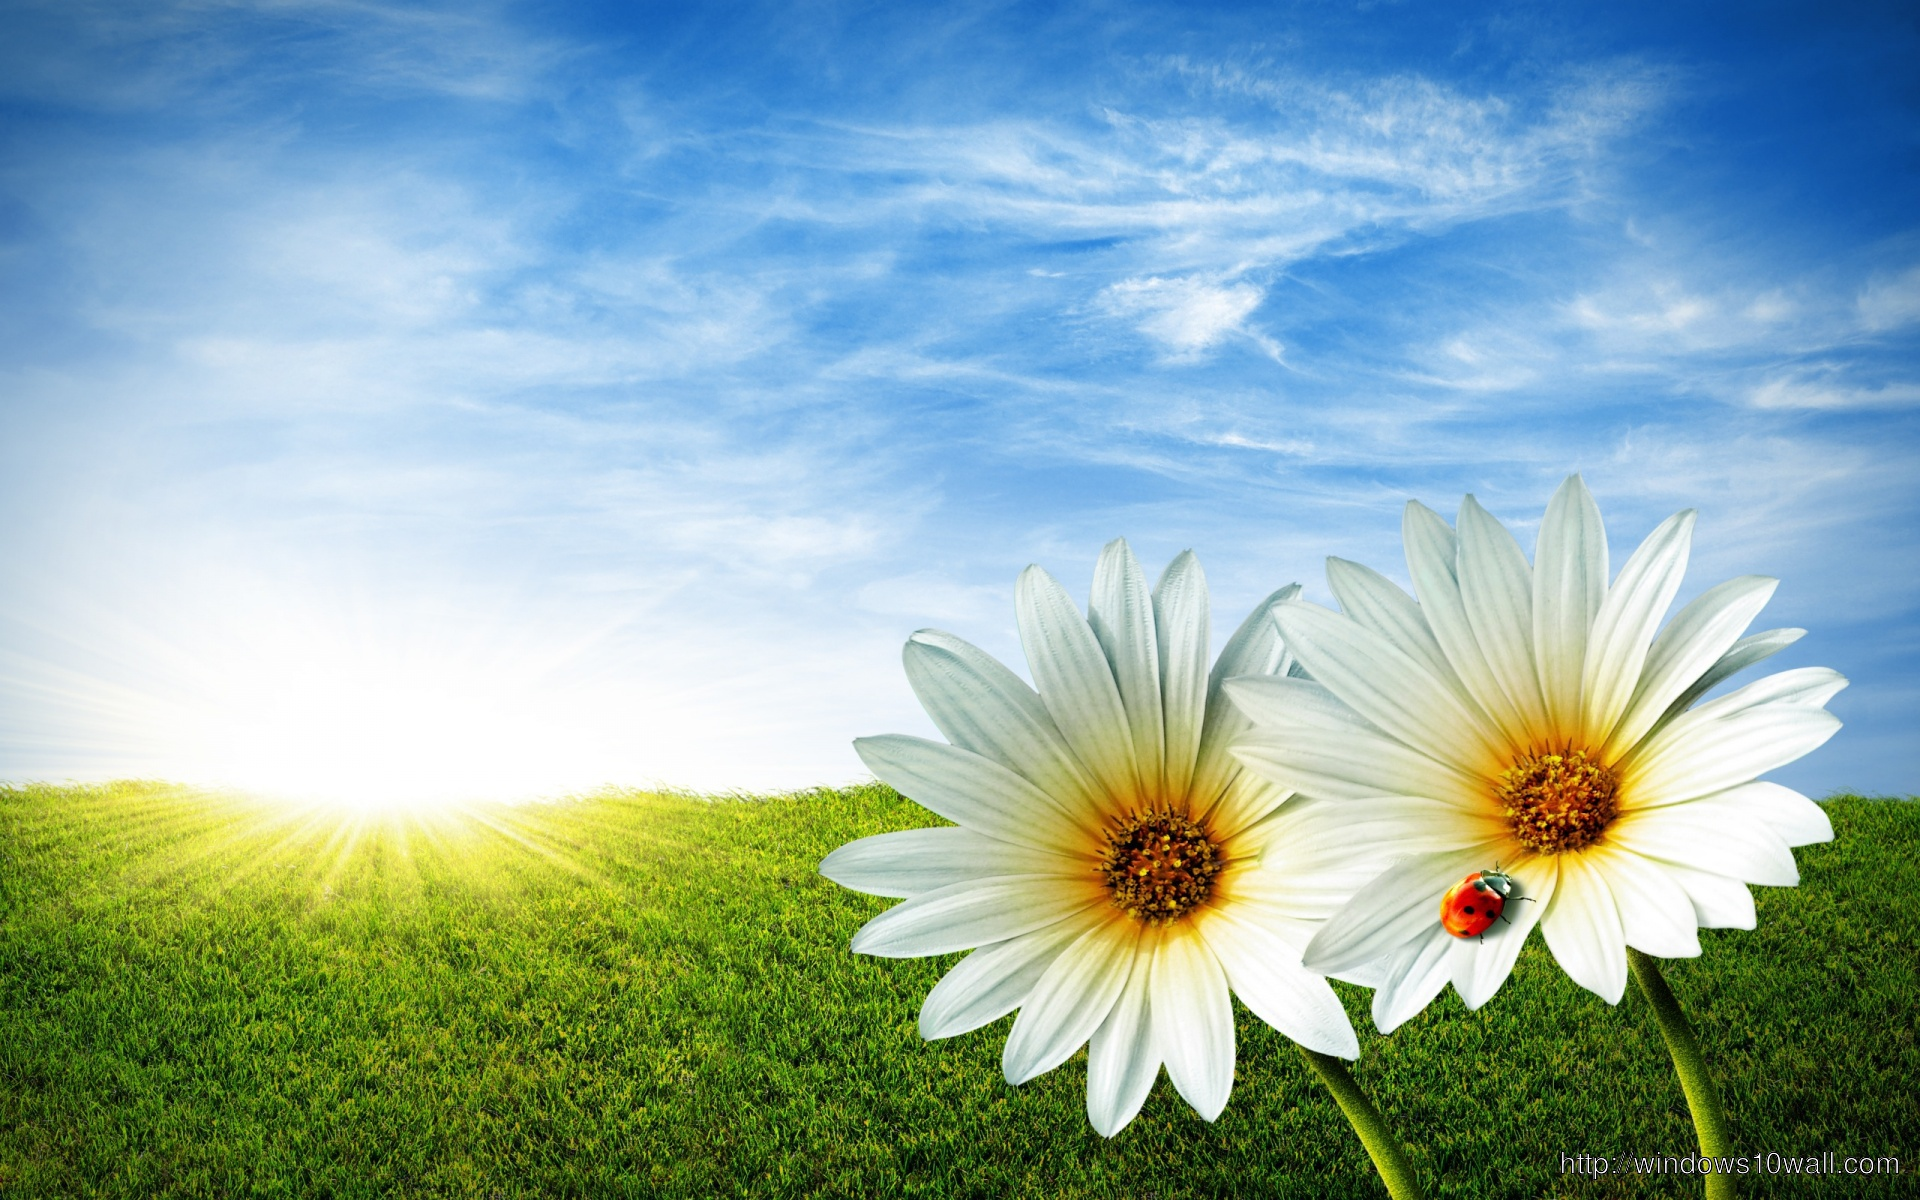 White Fowers in Sunflower Background Wallpaper